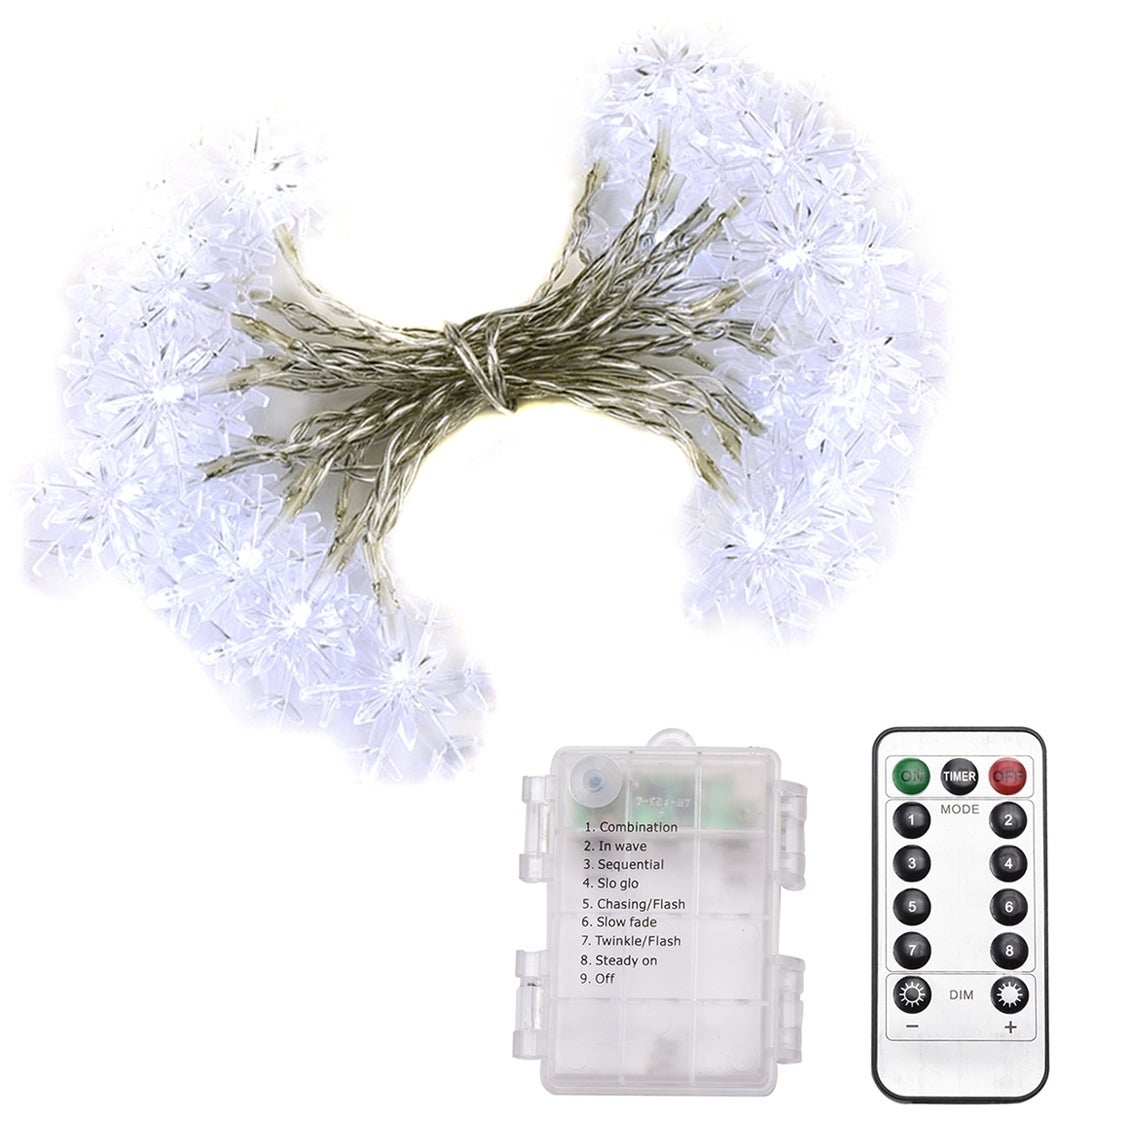 Abba Patio 32ft Led String Lights 8 Modes Remote Control Battery Operated Dimmable Snowflake White